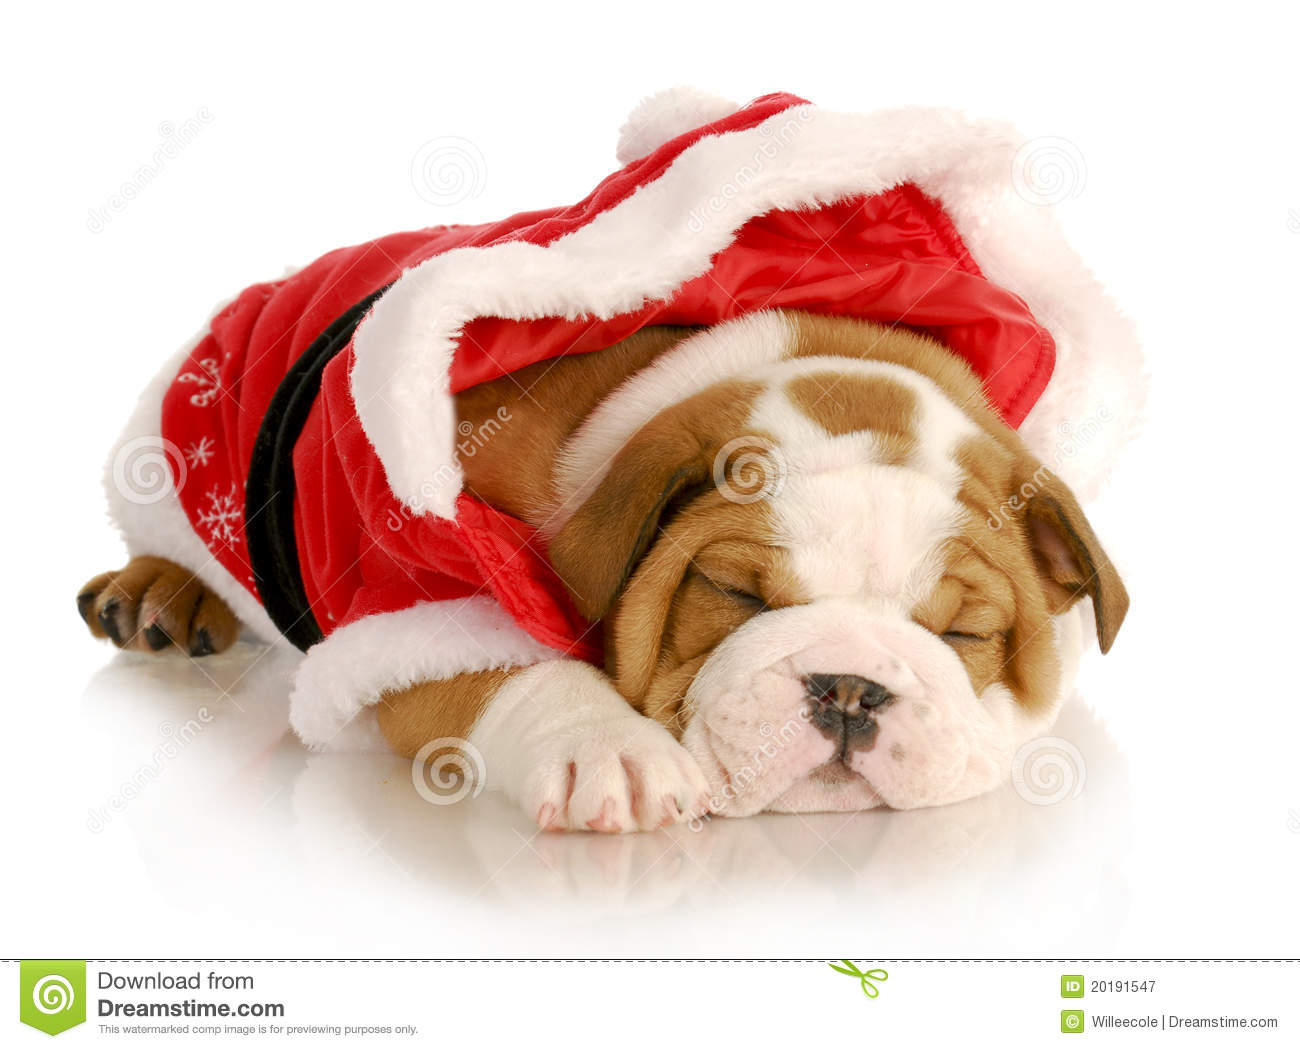 Cute Christmas Puppies.Cute Christmas Puppy Stock Image Image Of Christmas 20191547